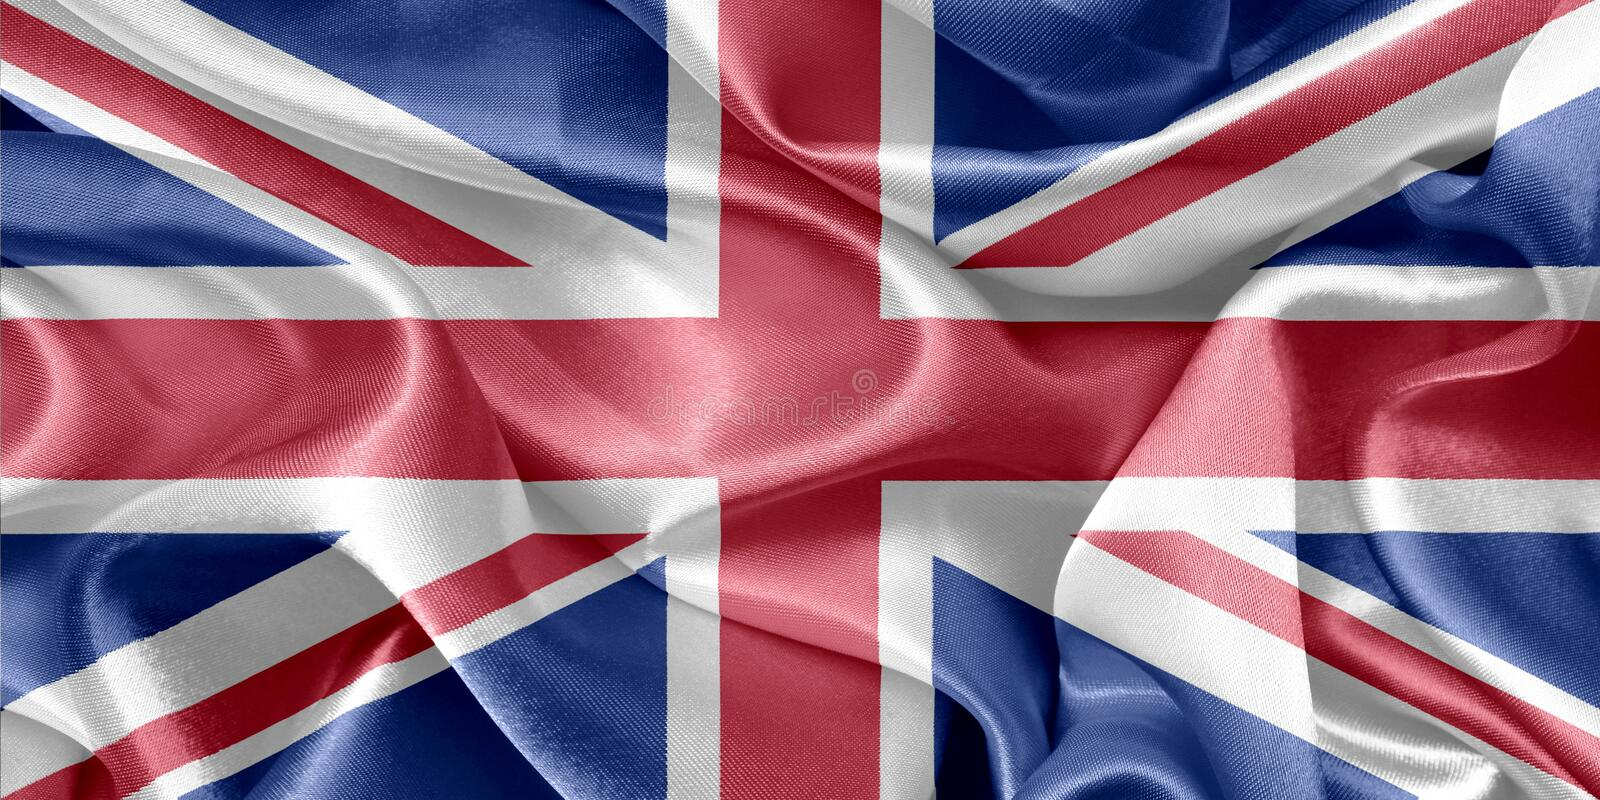 England flag royalty free stock photos